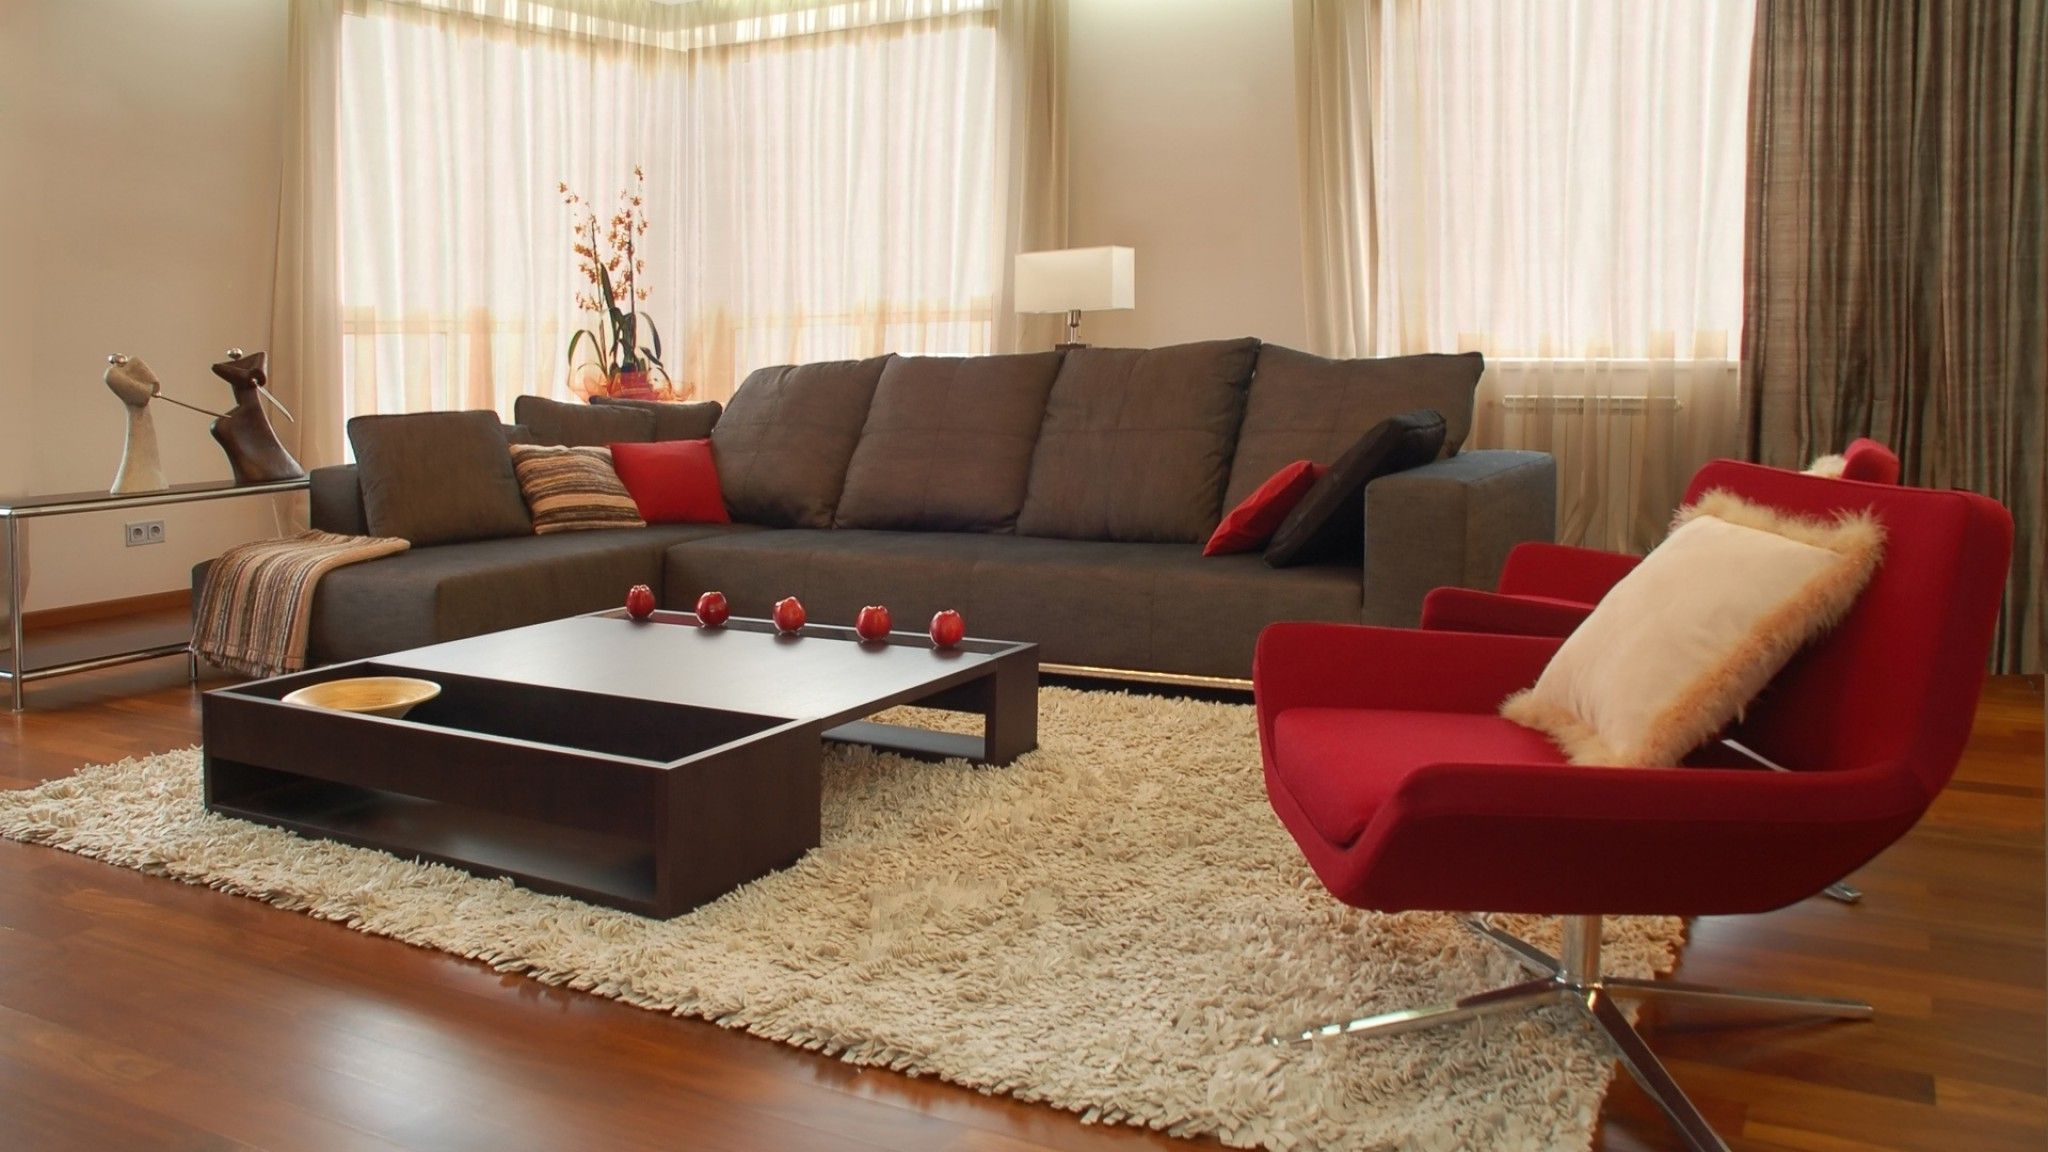 Brown Living Room Ideas For Designing An Elegant But Comfy Decoracion De Salas Muebles Living Muebles Sala